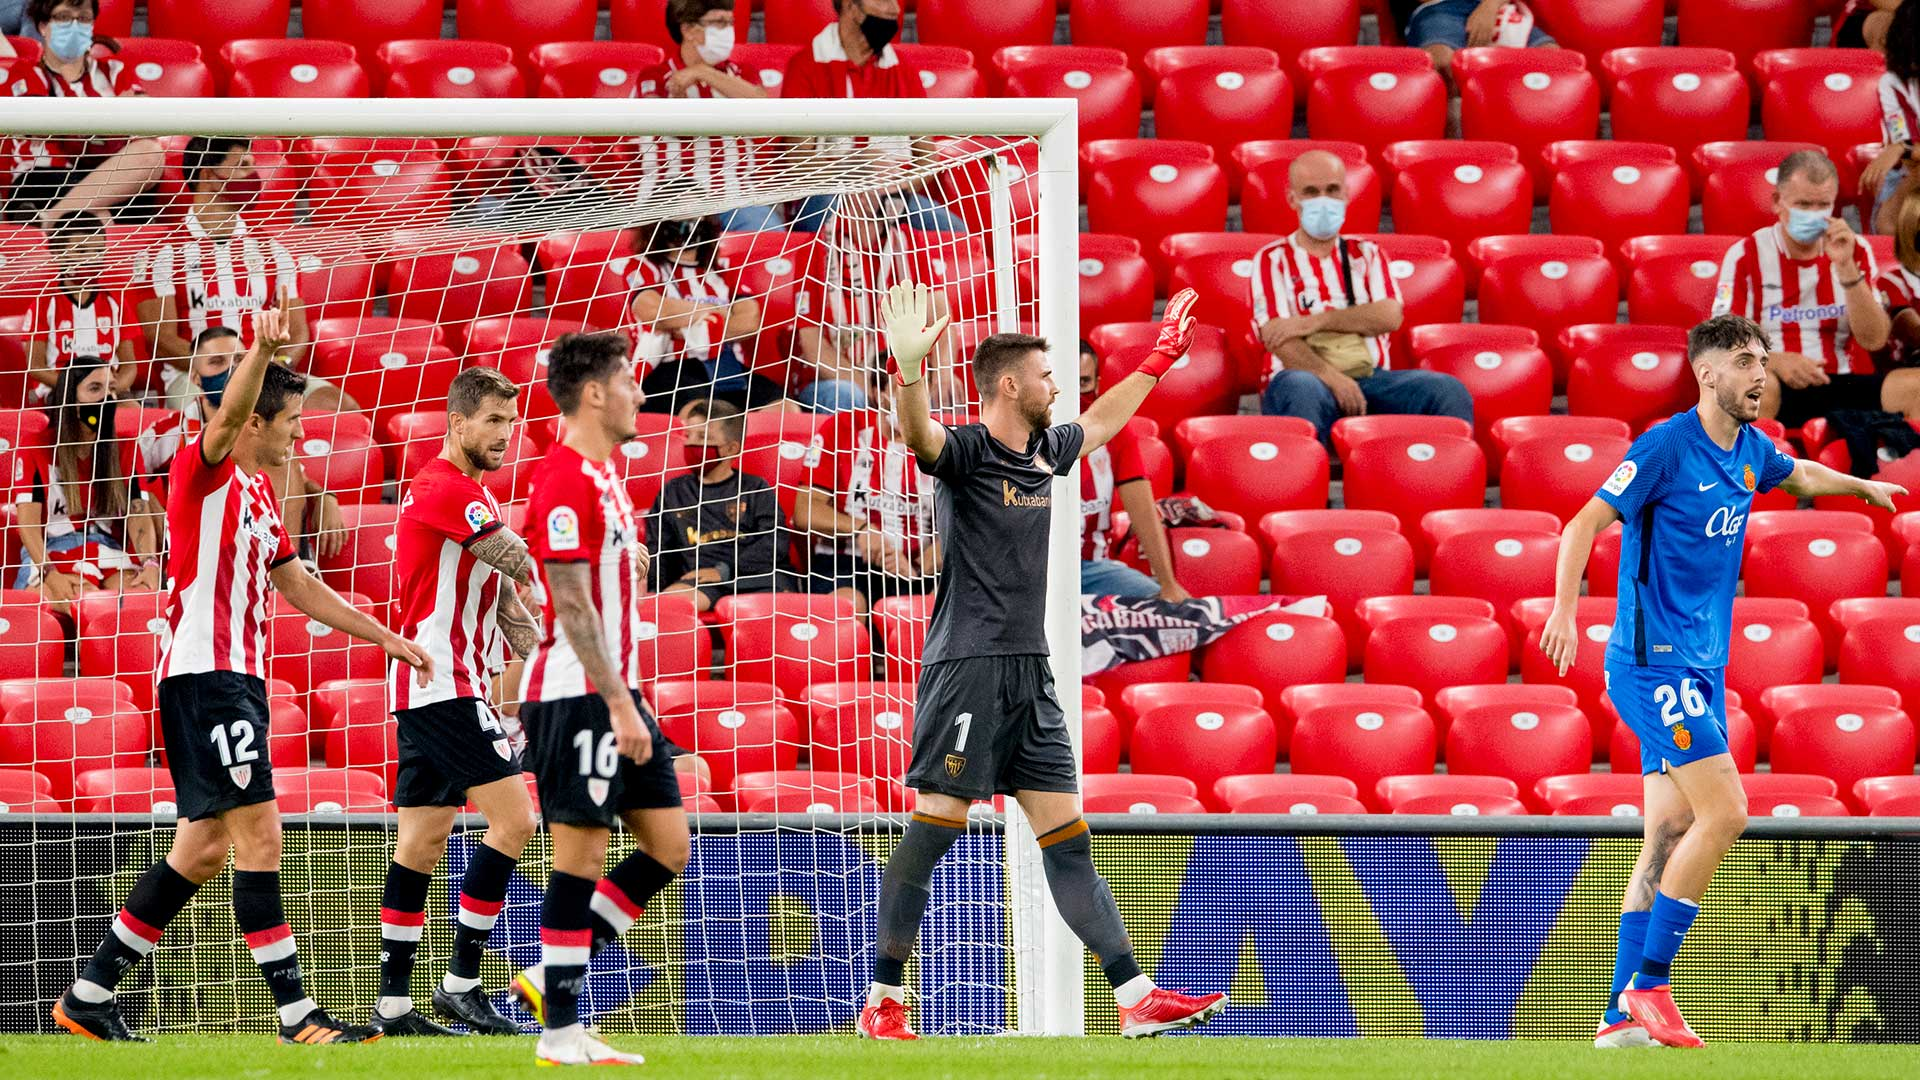 Athletic Club, among the best defences in Europe's top leagues